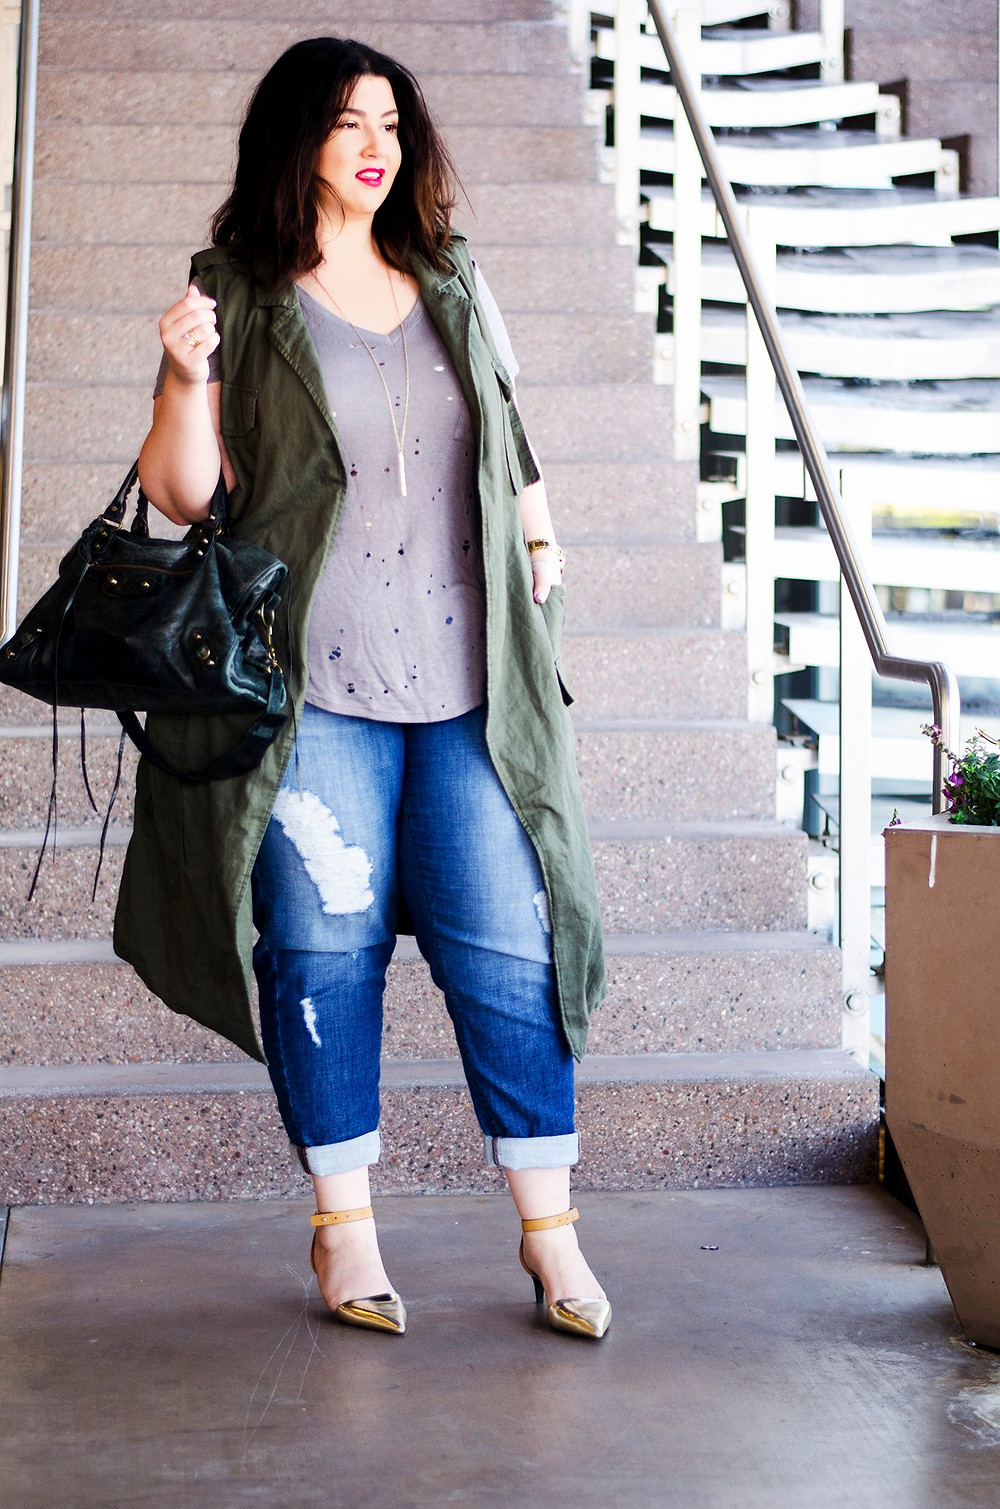 crystal coons target who what wear plus size ootd chic casual what to wear weekend plus